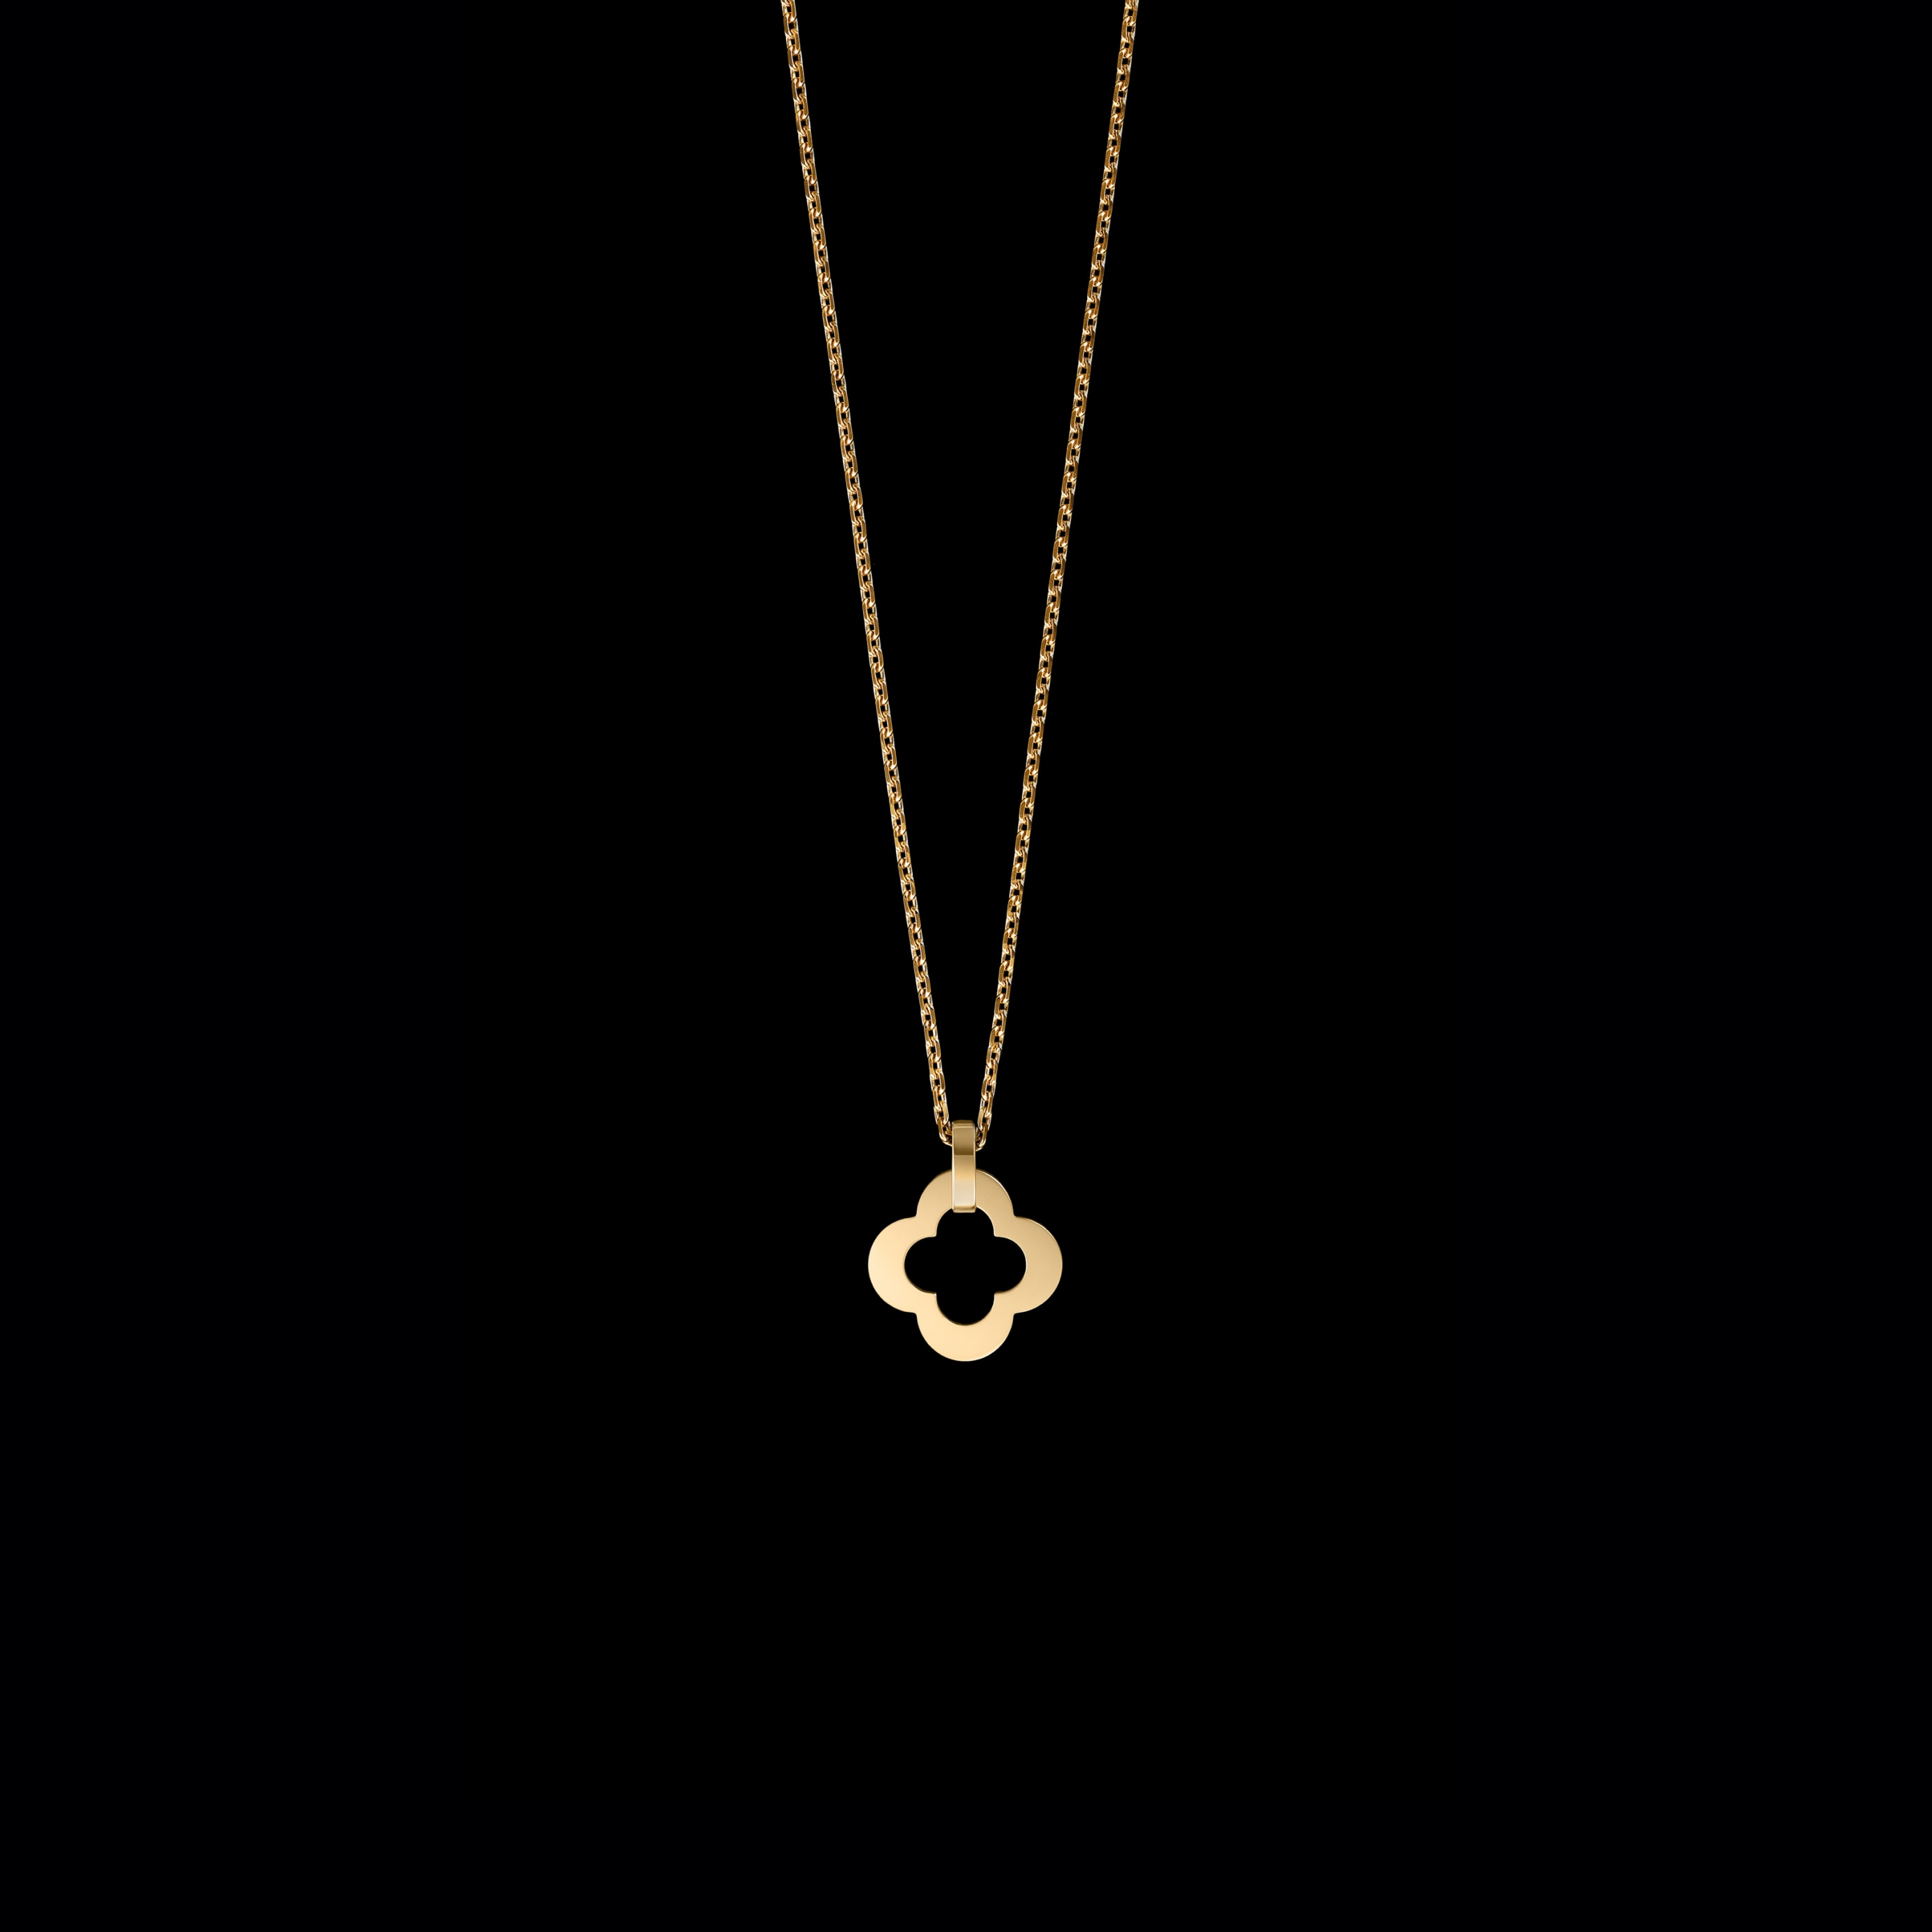 Byzantine Alhambra pendant, large model, yellow gold, Van Cleef & Arpels